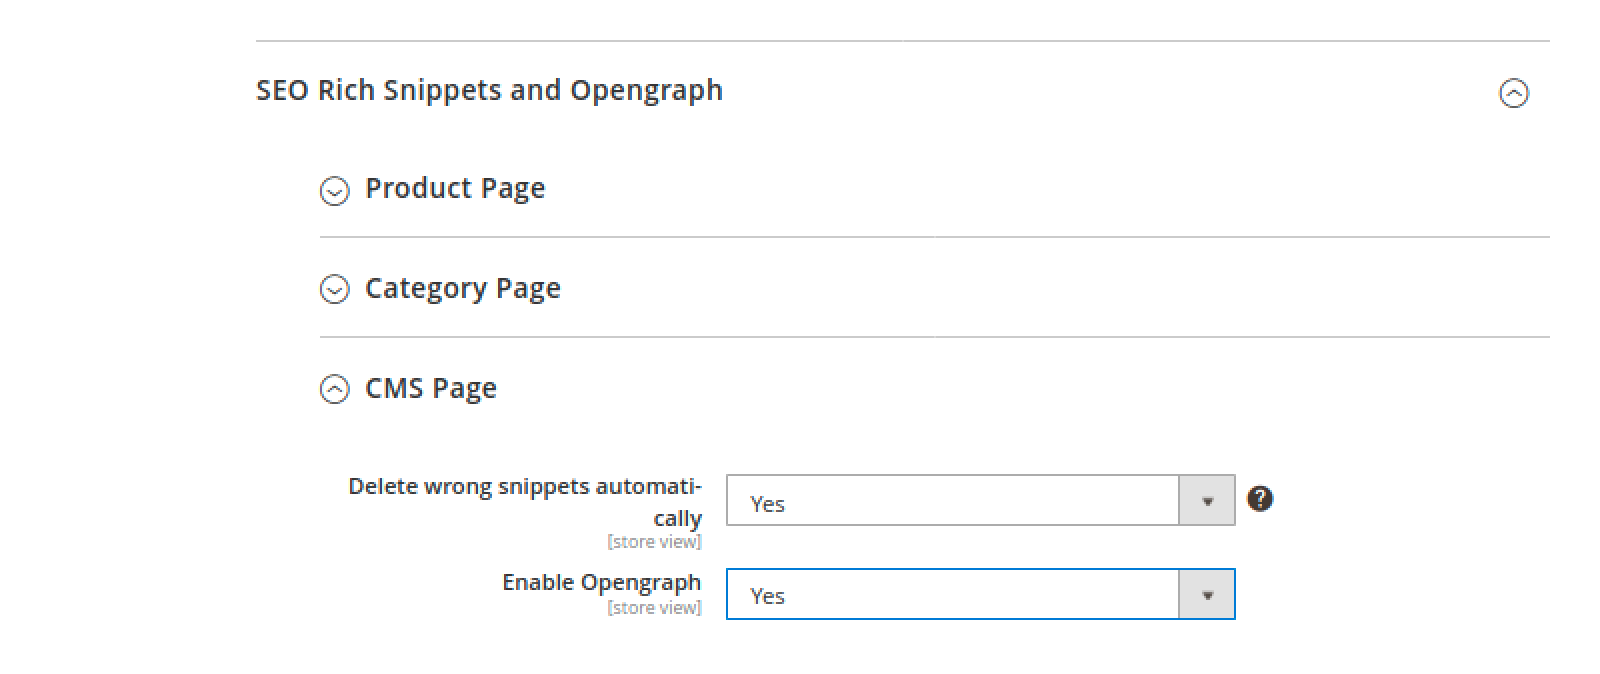 Opengraph toggle for CMS page in Mirasvit Advanced SEO Suite